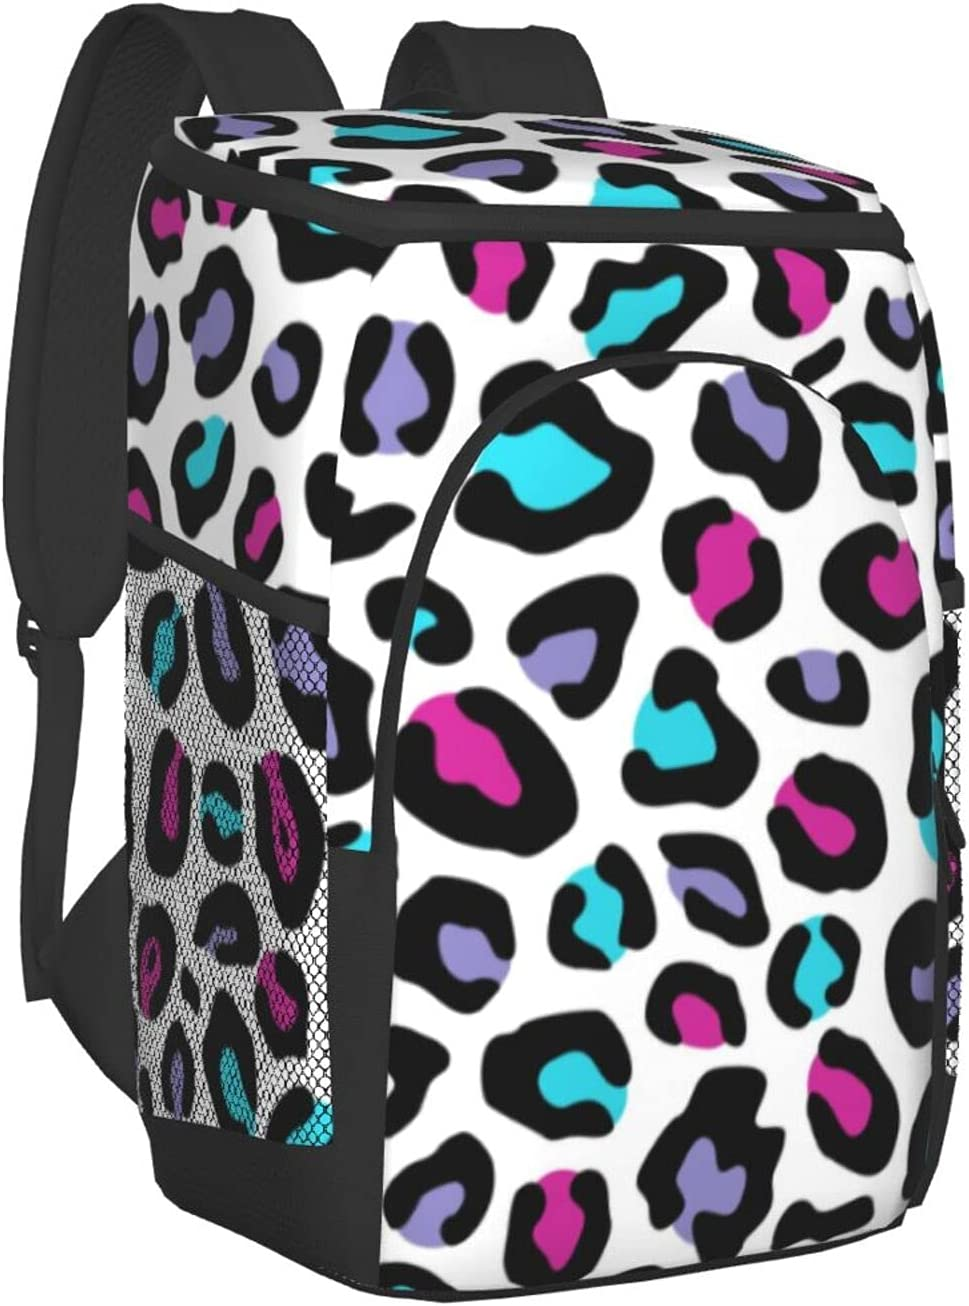 Colorful Popularity Weed Max 86% OFF Leaf Pattern Cooler Backpack Insulated Bag Leakpro